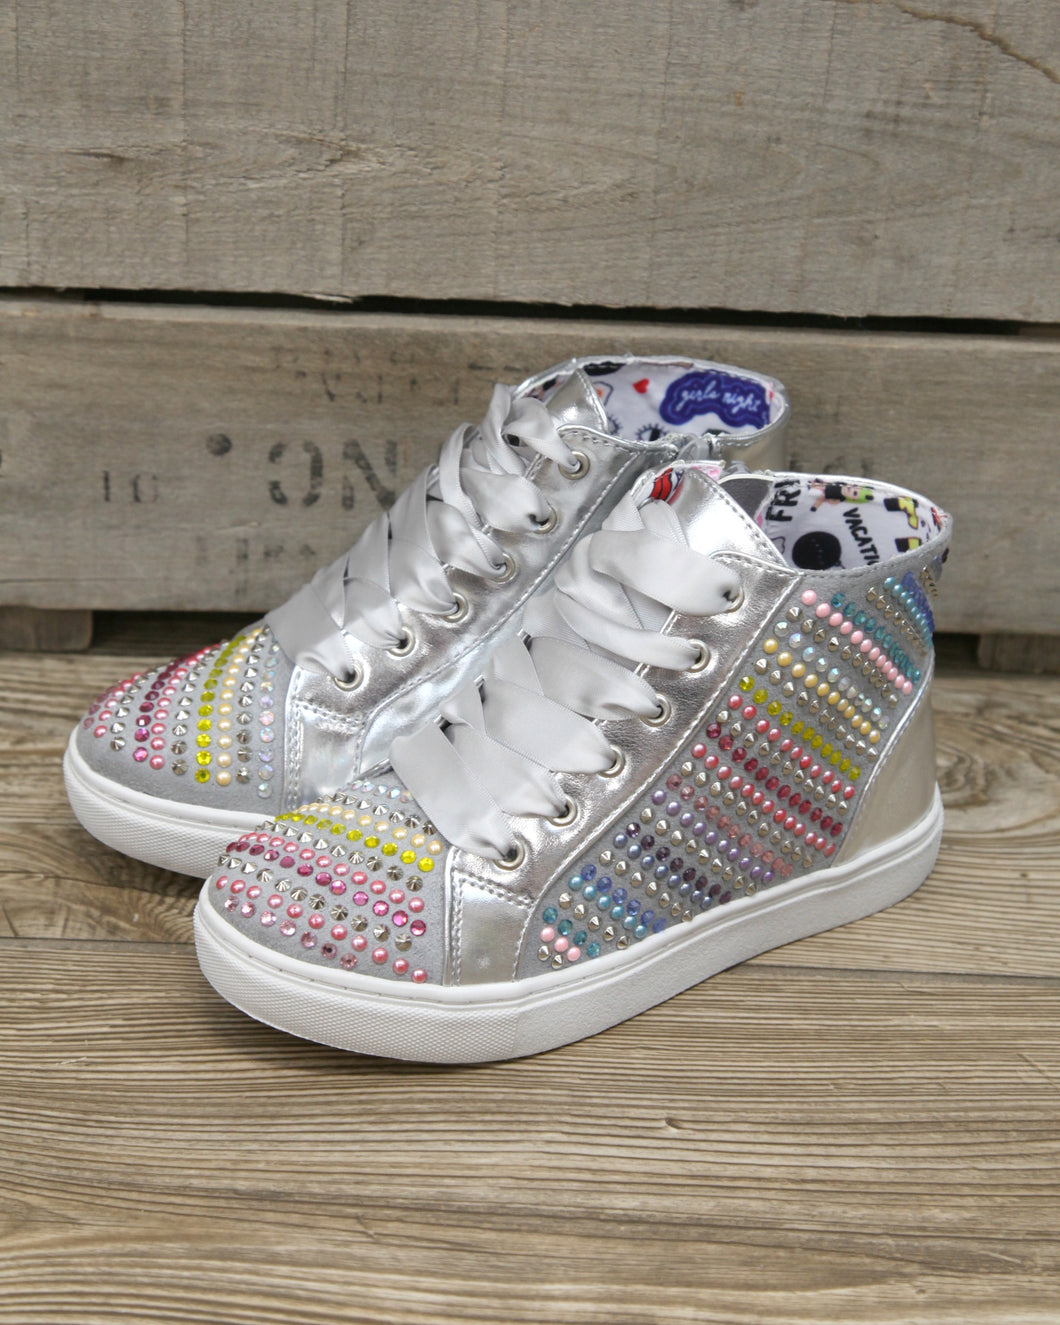 STEVE MADDEN J Rainey Rainbow Sparkle High Top Sneaker w Side Zip